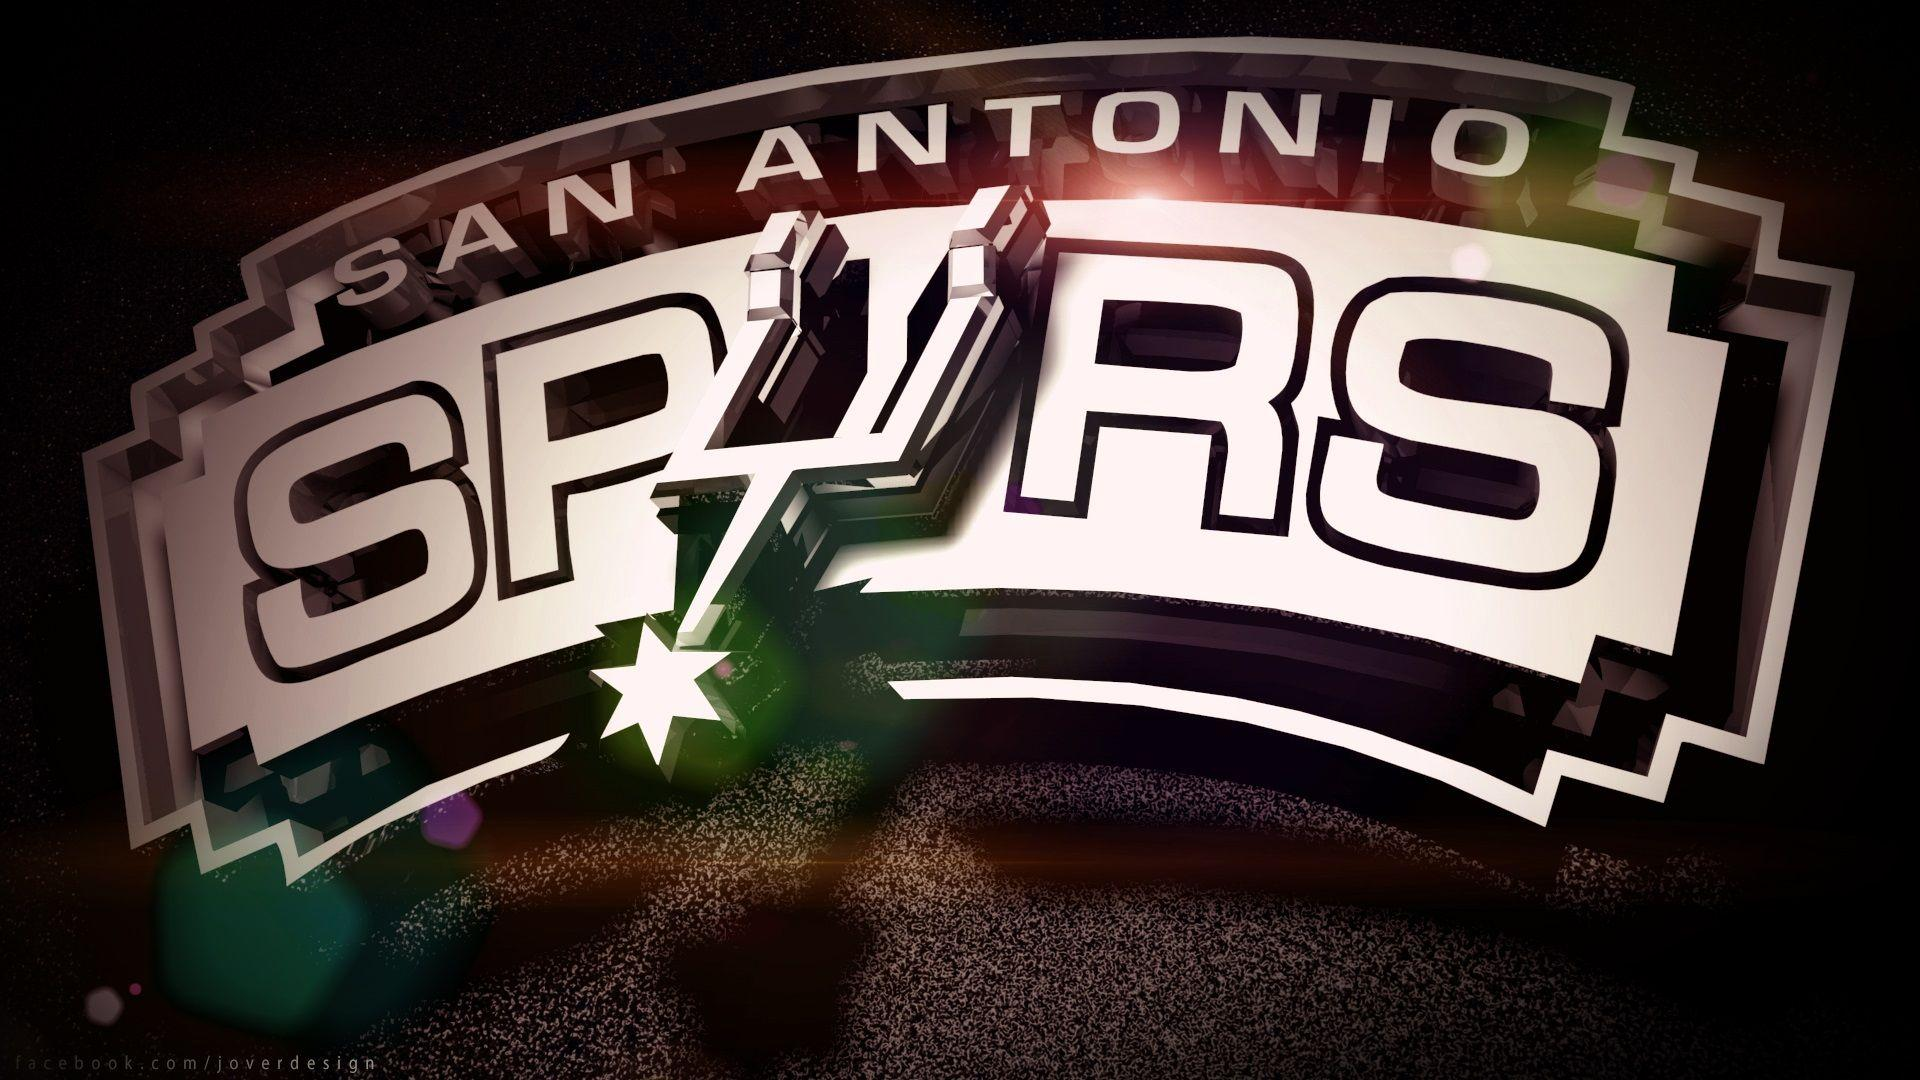 San Antonio Spurs tickets 100 guaranteed by FanProtect Buy and sell San Antonio Spurs tickets and other NBA basketball tickets at StubHub!